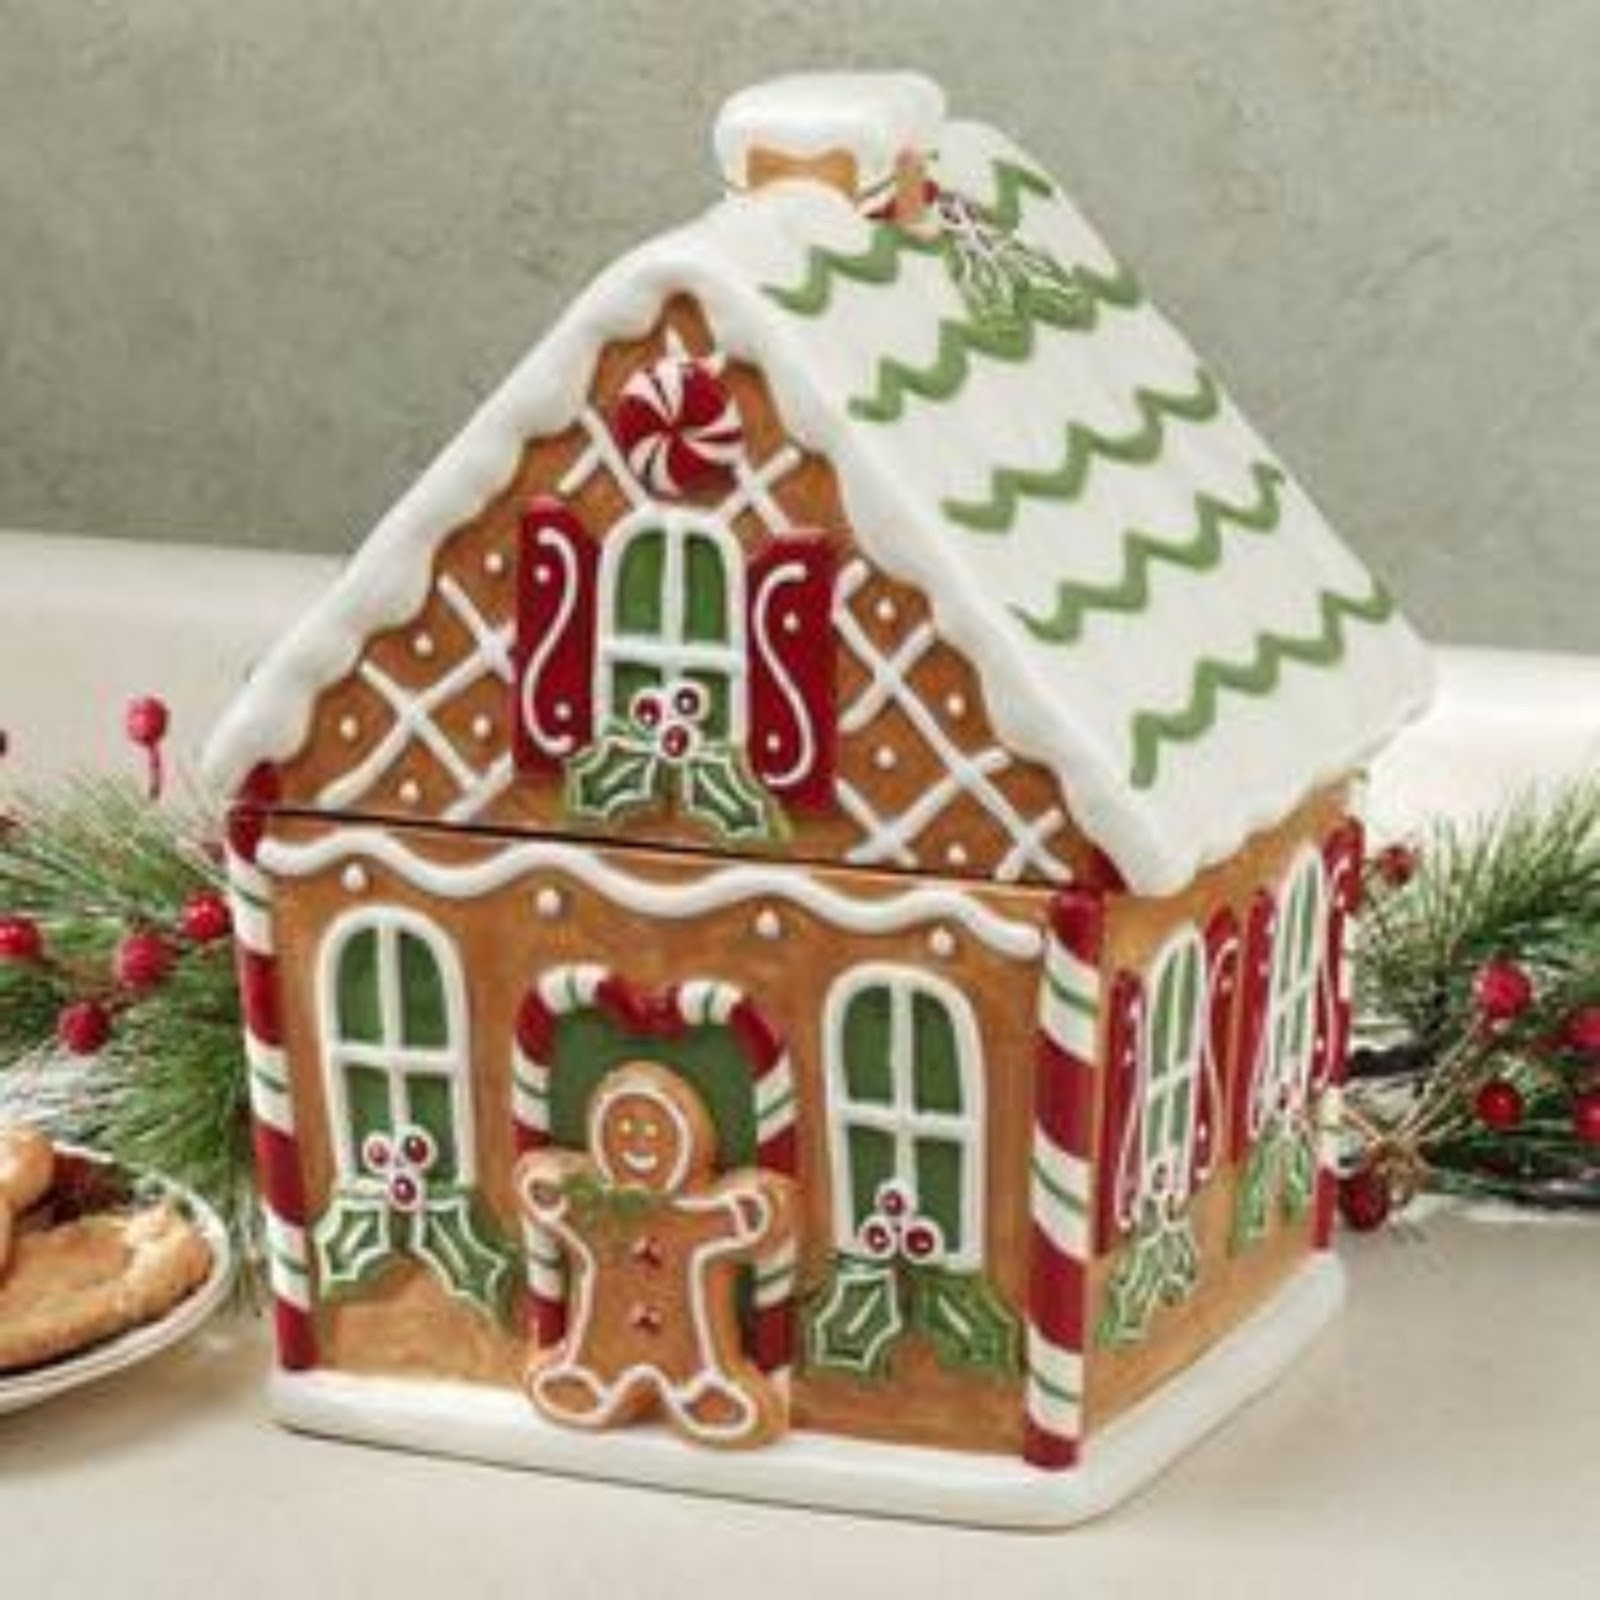 Christmas Gingerbread House Decorating Ideas - Gingerbread house garage